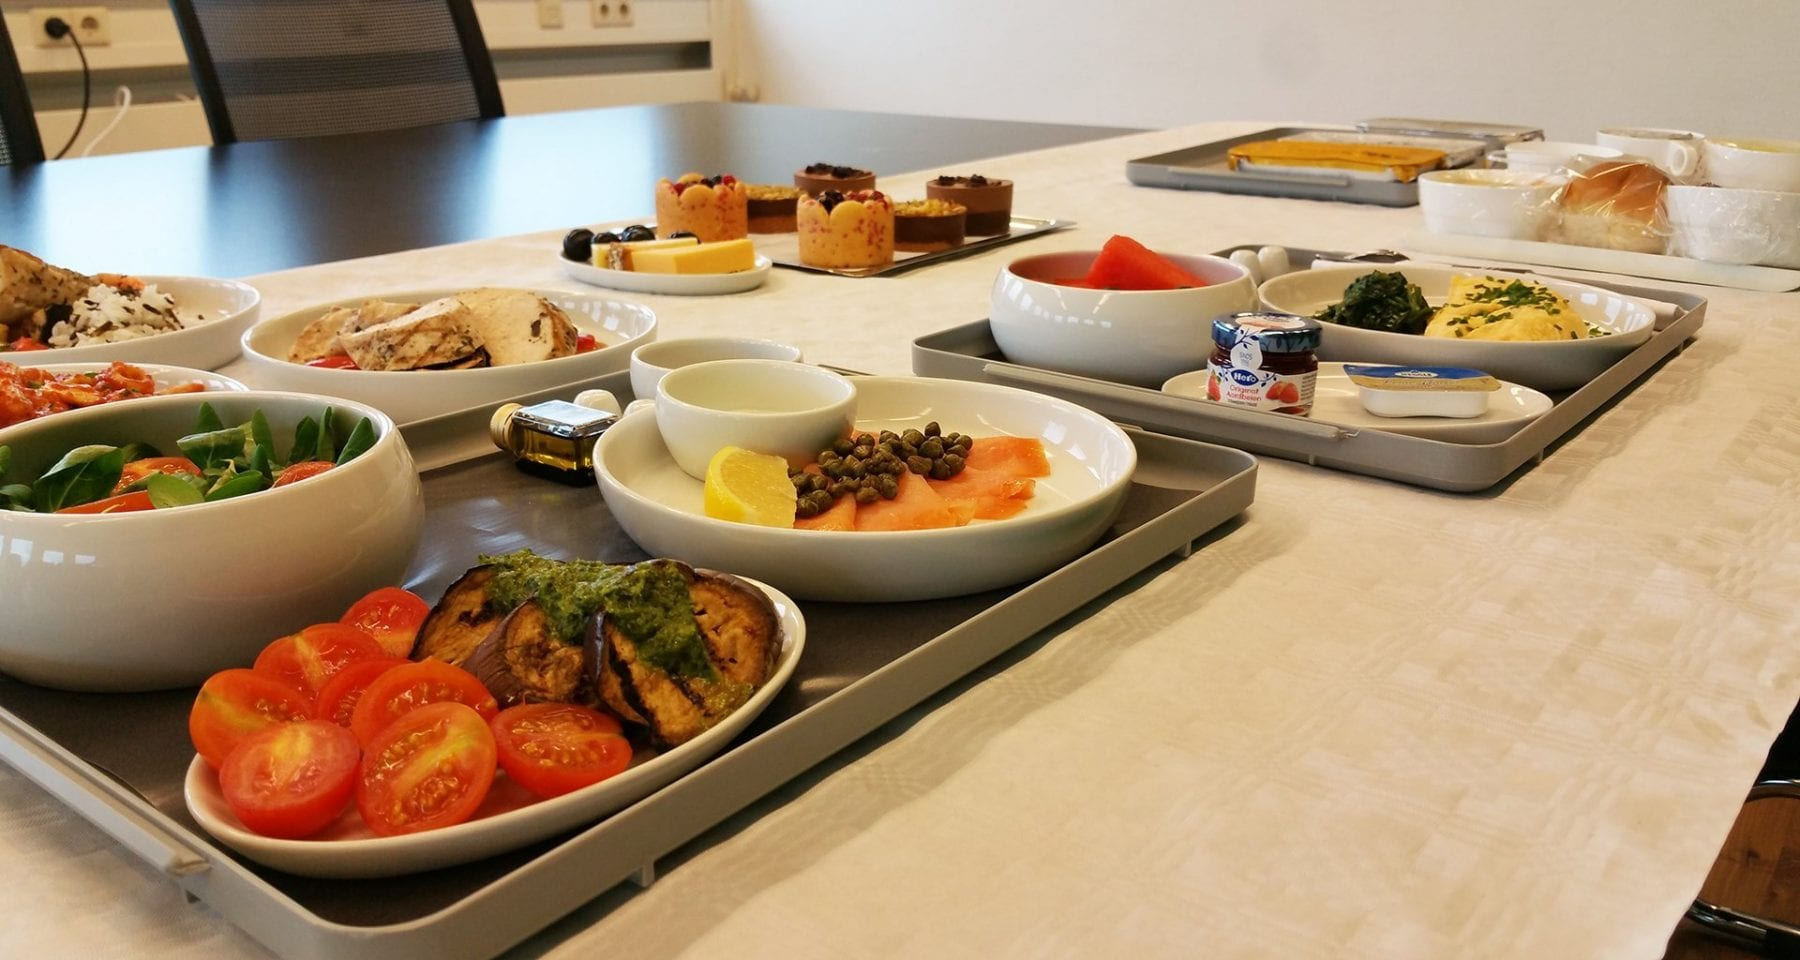 Aeromexico business class inflight meal selection at Gate Gourmet in Amsterdam